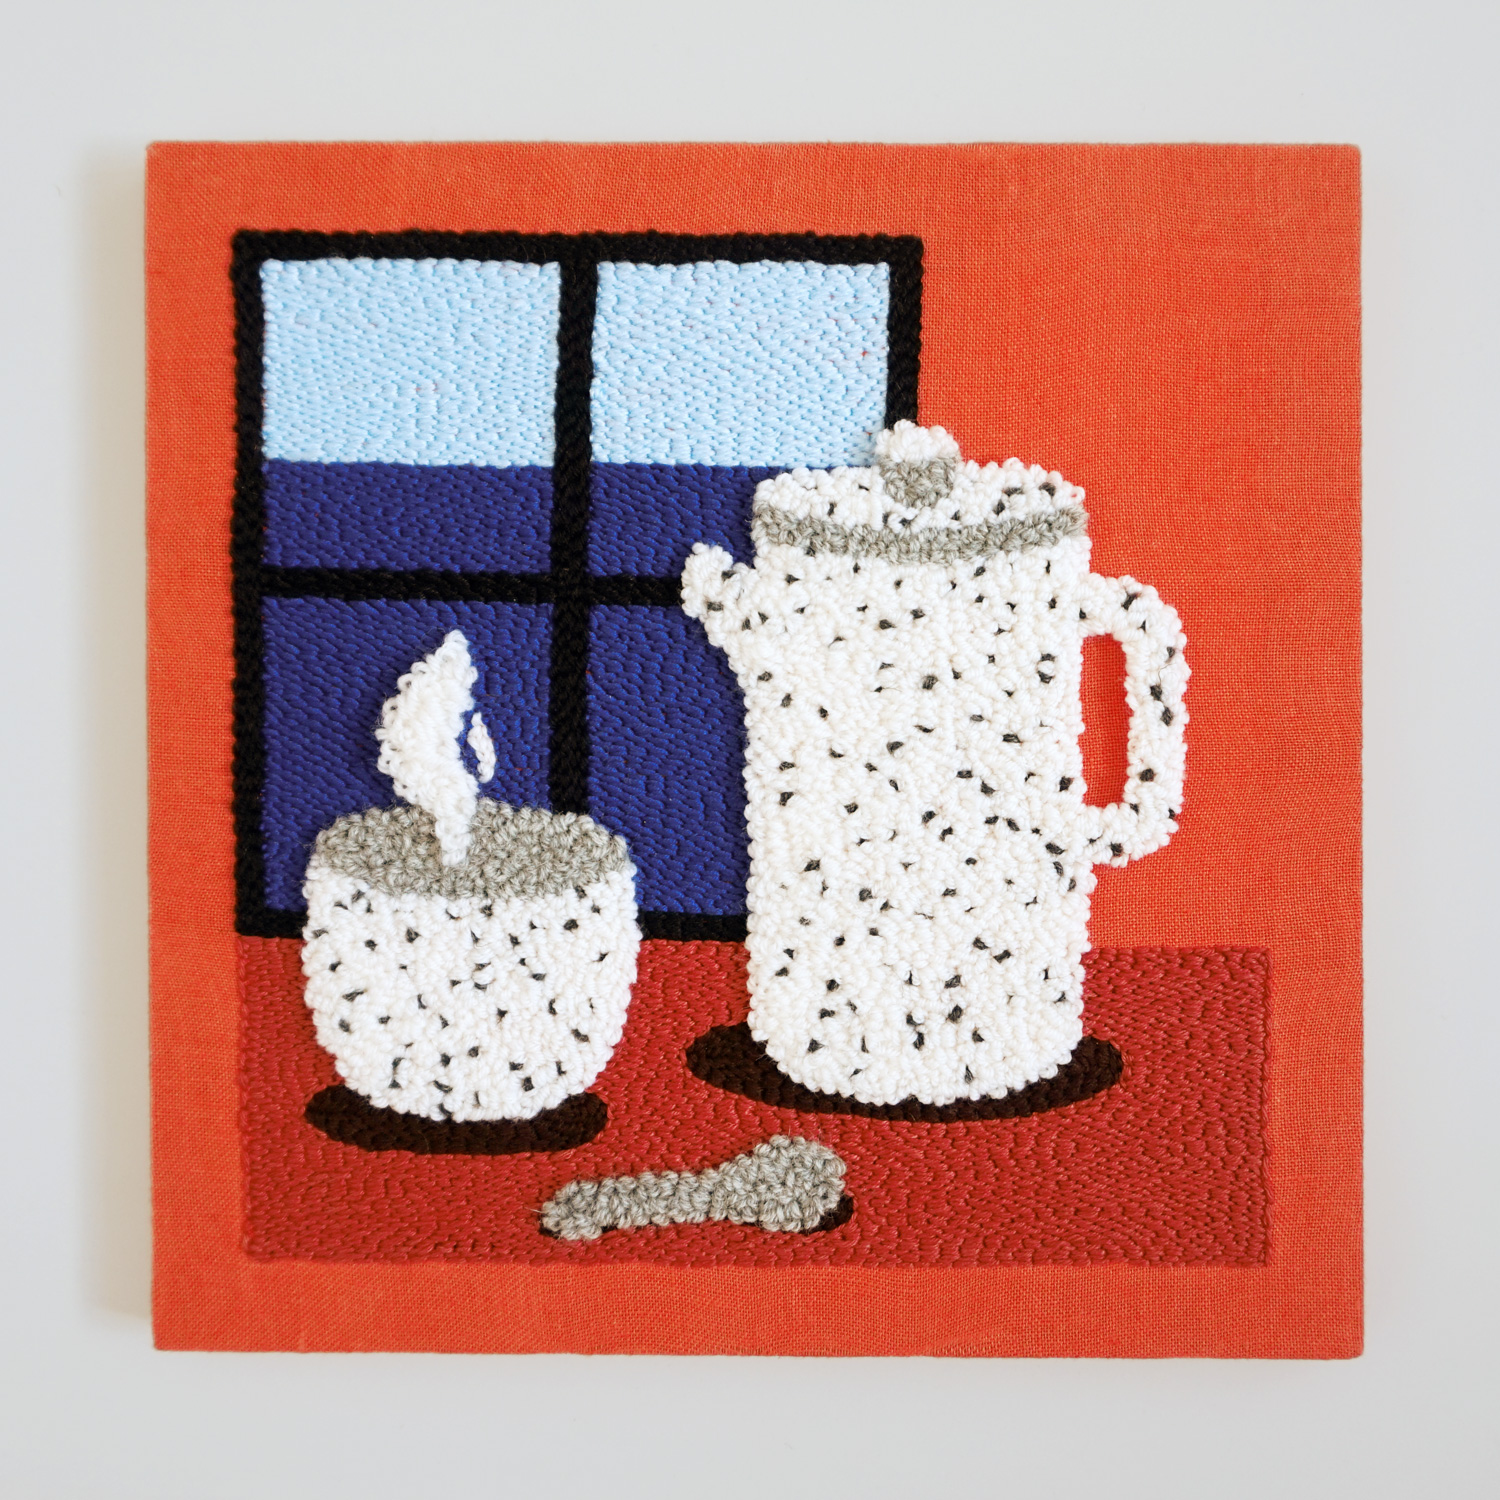 A fluffy punch needle wall art, featuring a ceramic tea set in front of a window.